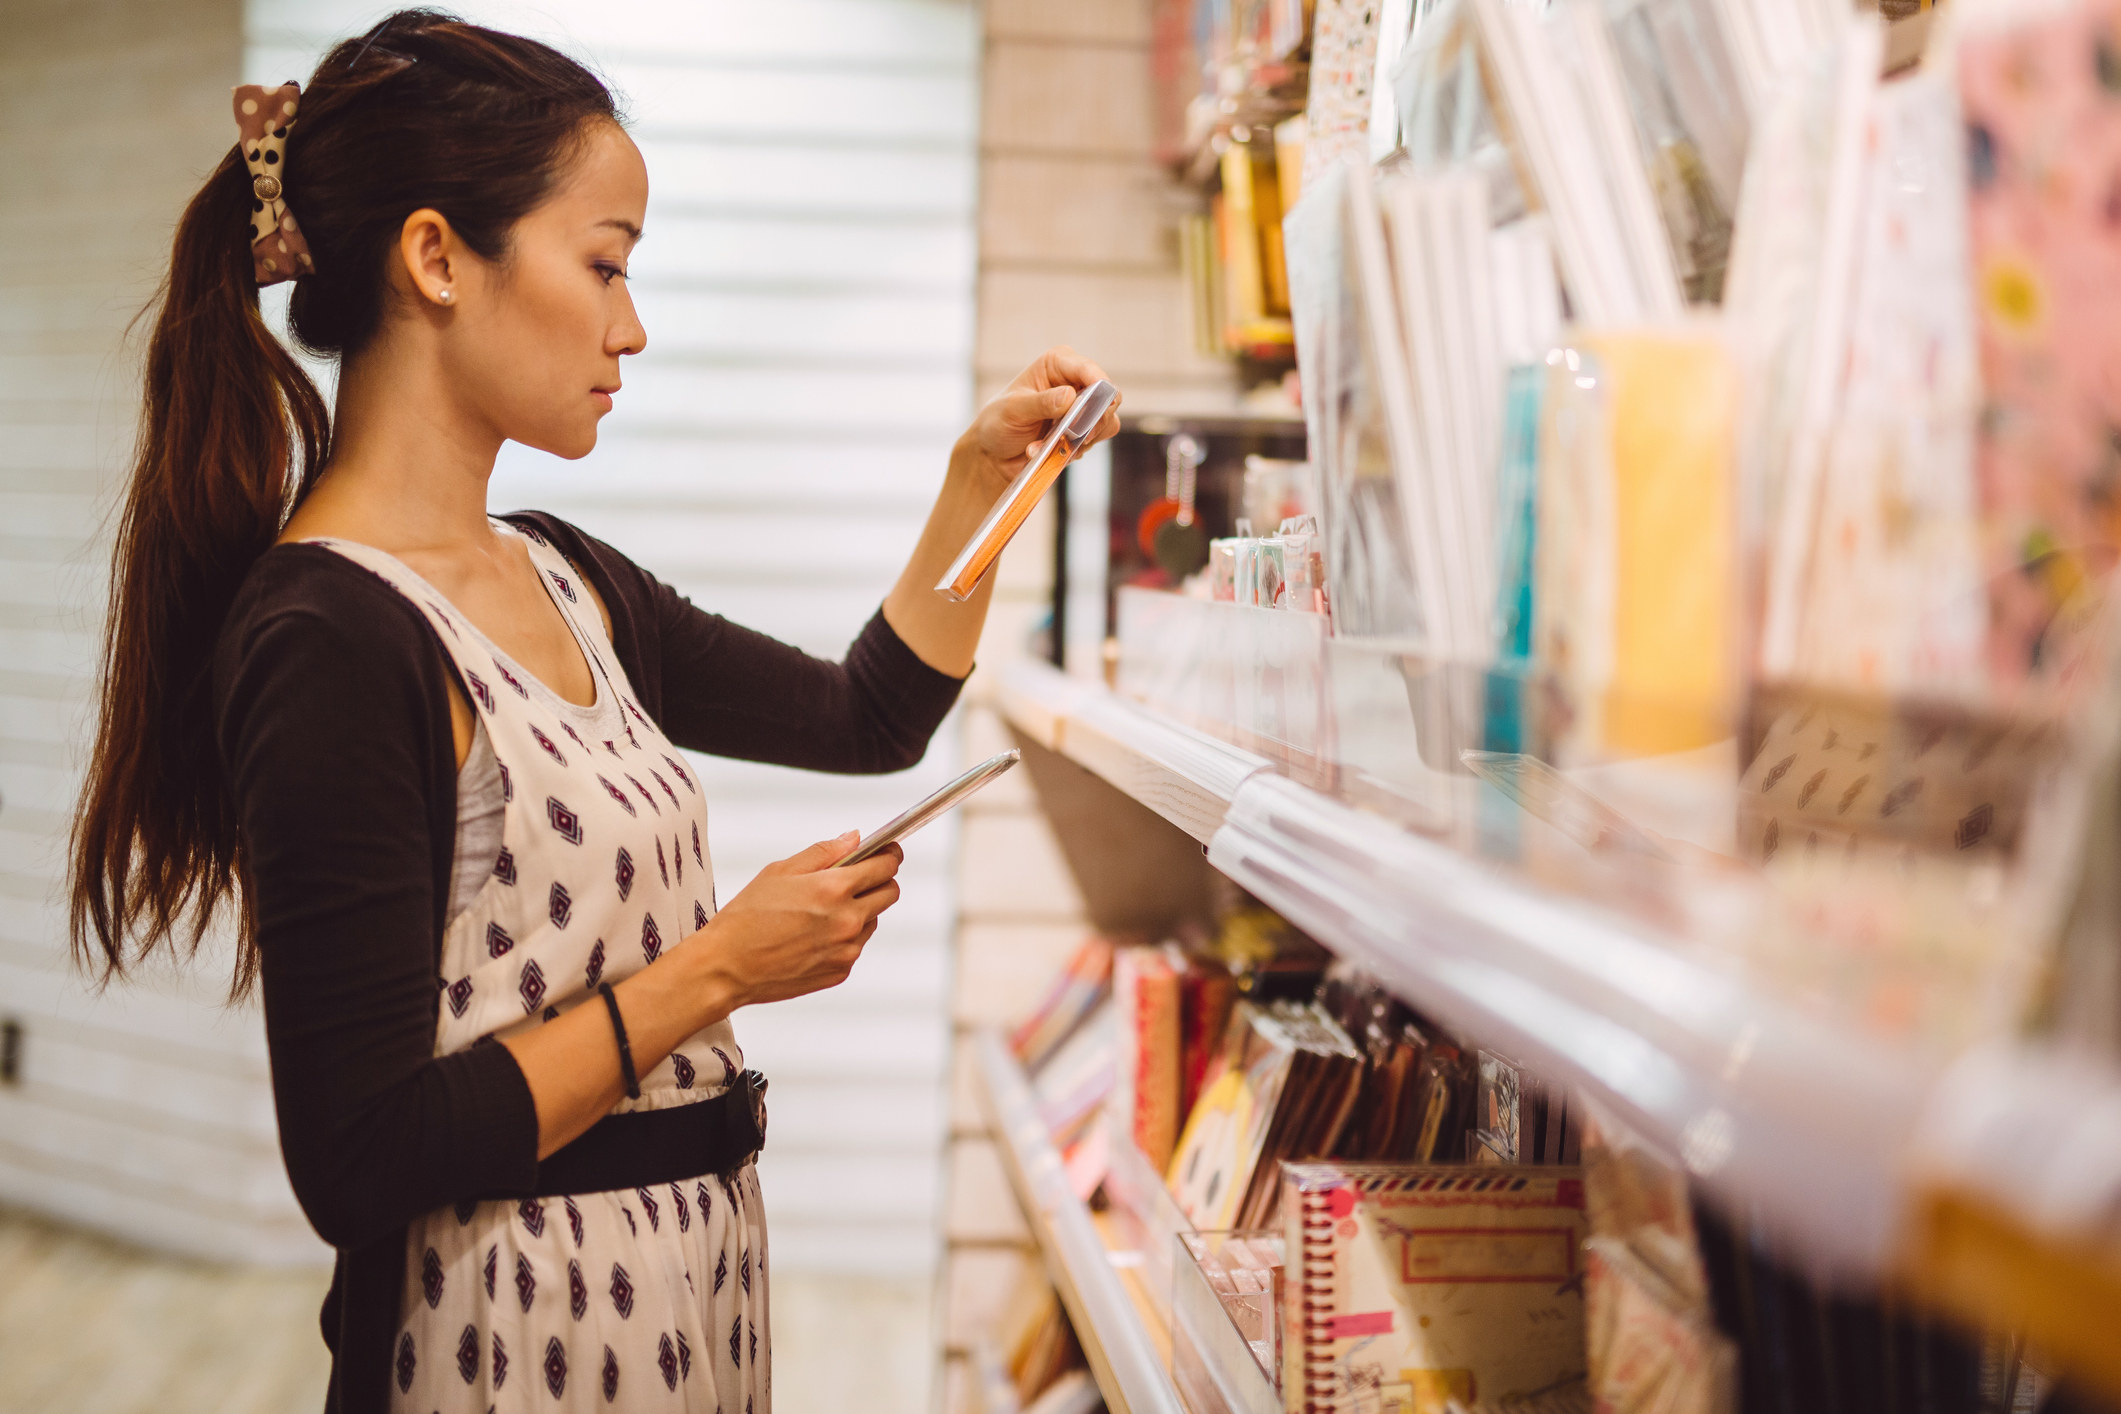 A young woman shops for greeting cards